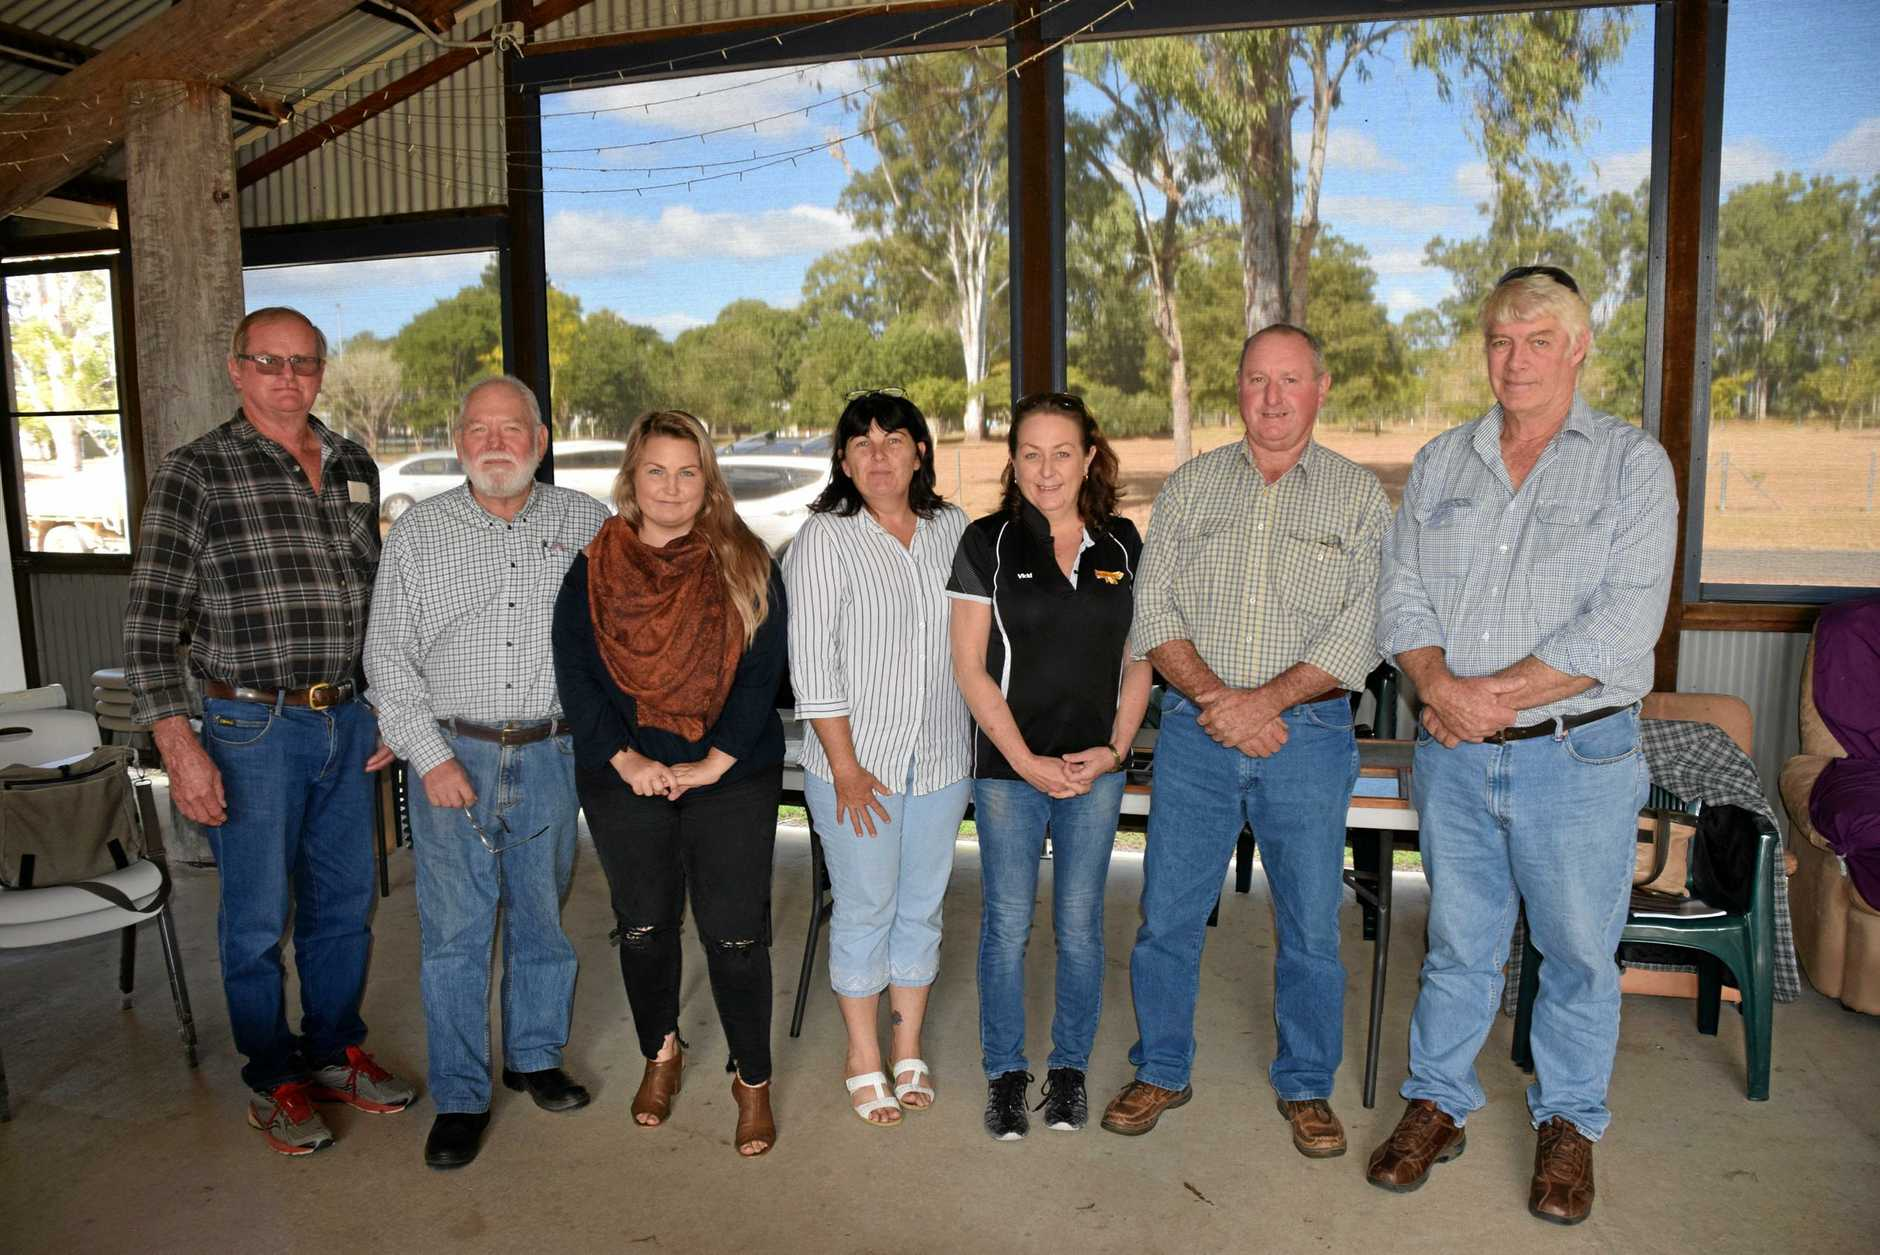 RAIL TRAIL INC: Neville Mossman, Mike Gobel, Meagan Ellerton, Tanya Huth, Vicki Mackay, Mick Colyer and Mark McLachlan